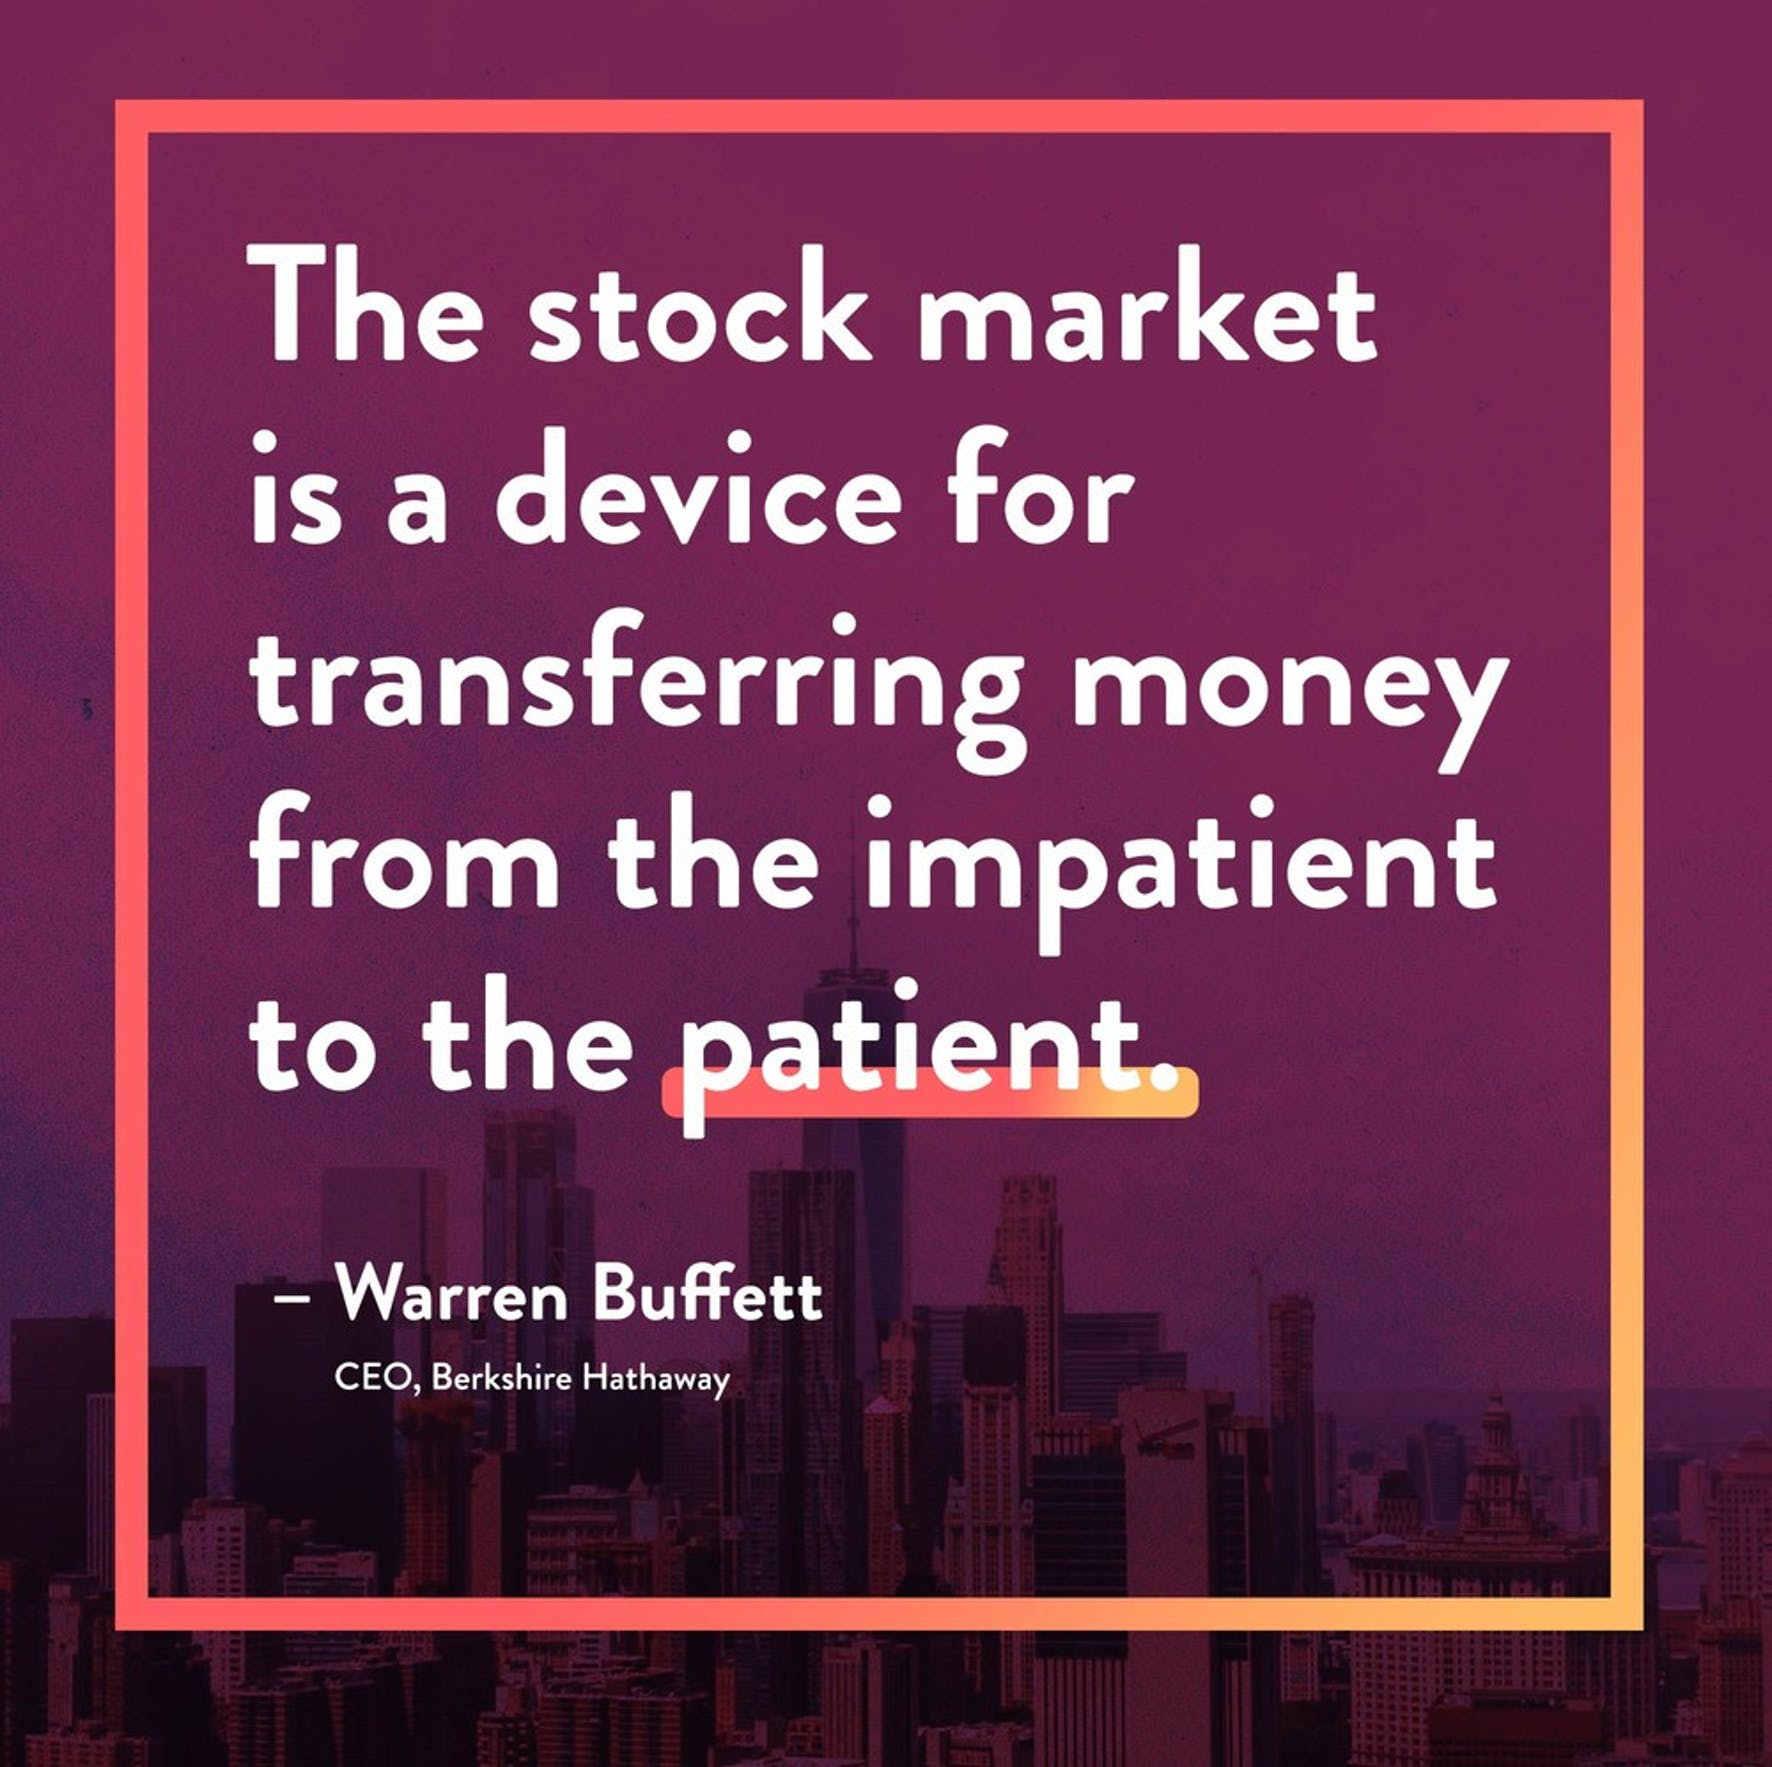 Warren Buffett quote on the stock market and patience: the stock market is a device for transferring money from the impatient to the patient.